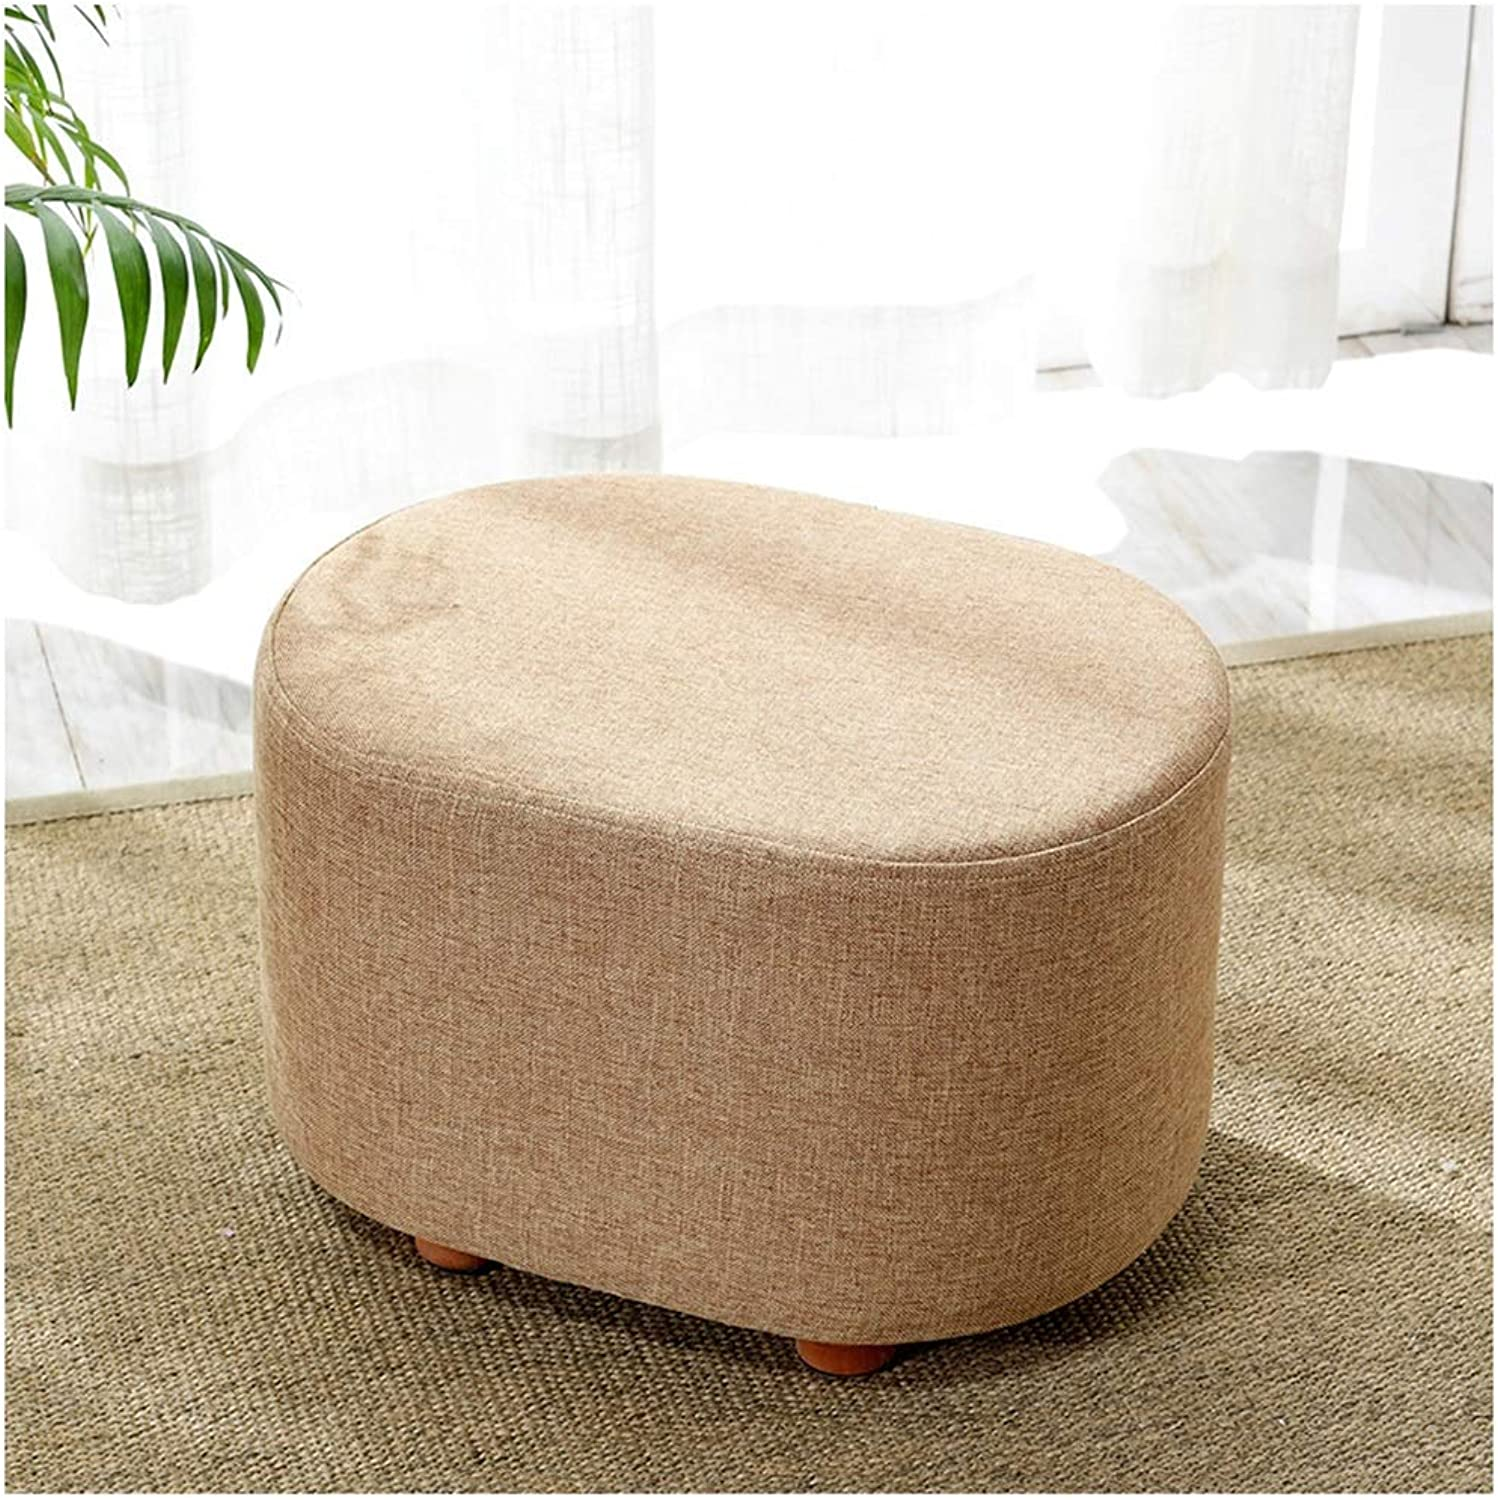 SMC stool Modern Creative Fabric Solid Wood shoes Stool Stool Sofa Stool (color   Brown)